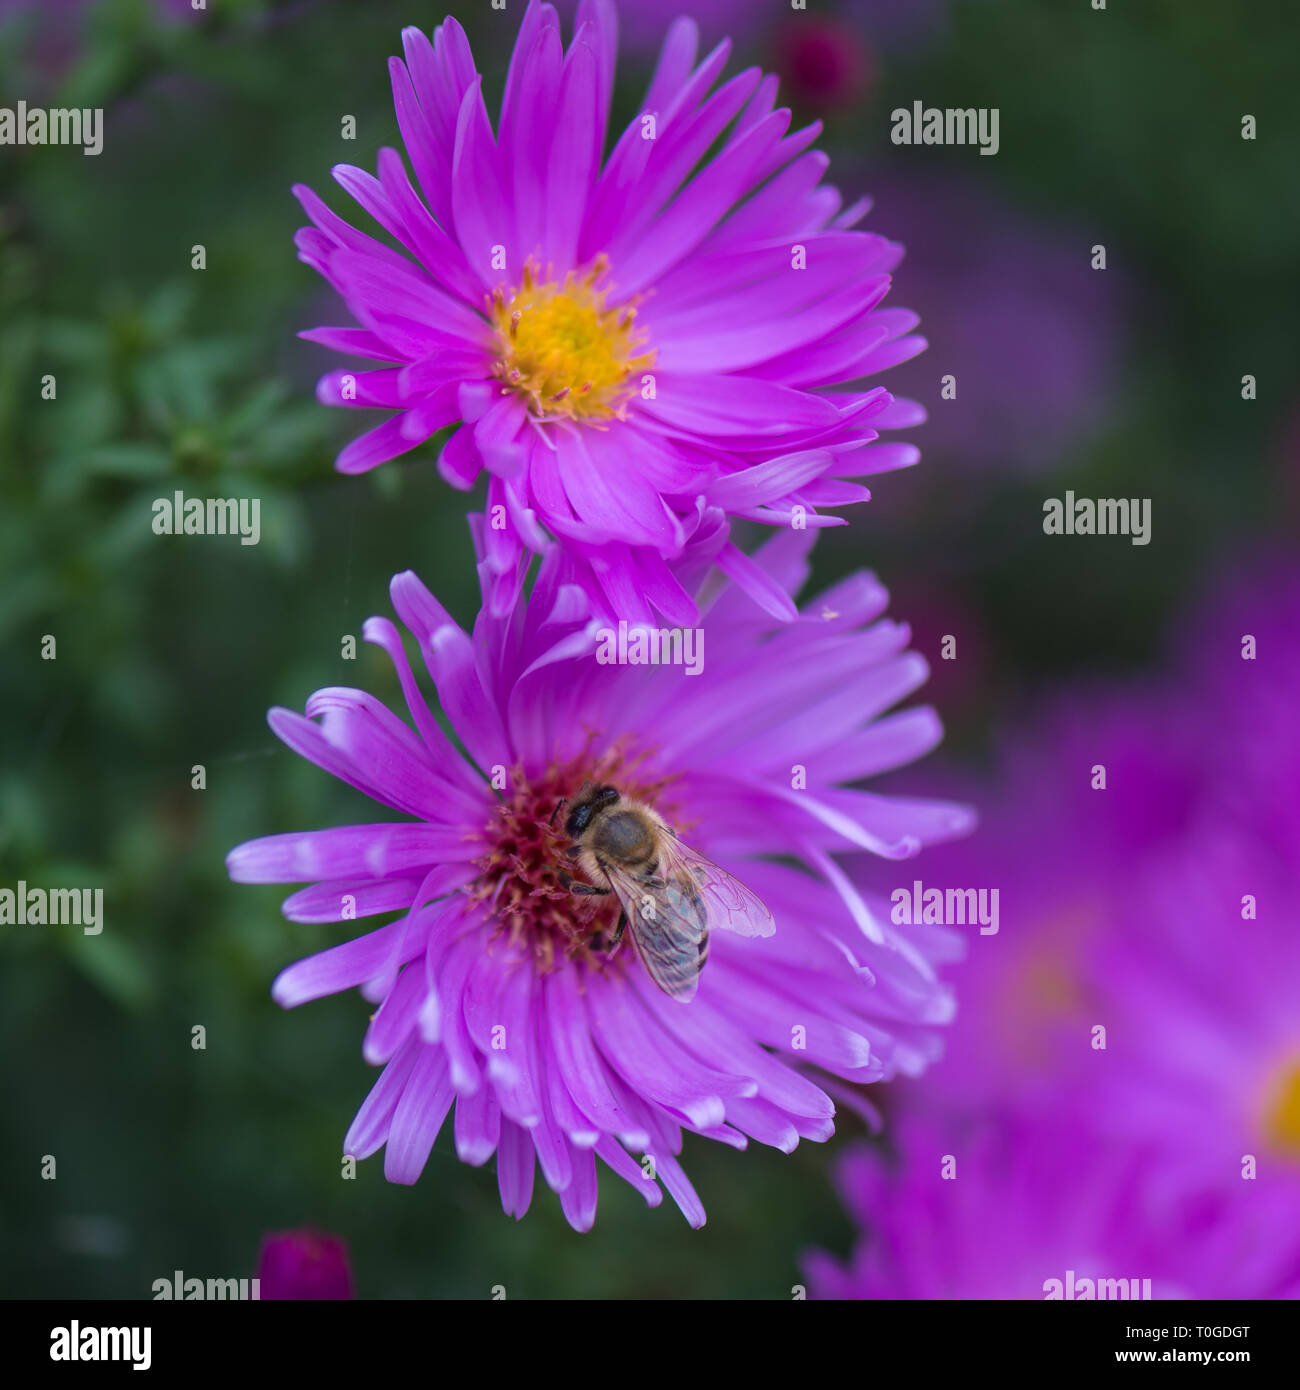 Aster amellus, perennial flowering plants in the family Asteraceae and pollinating honey bee in Wakehurst Wild Botanic Garden, United Kingdom - Stock Image